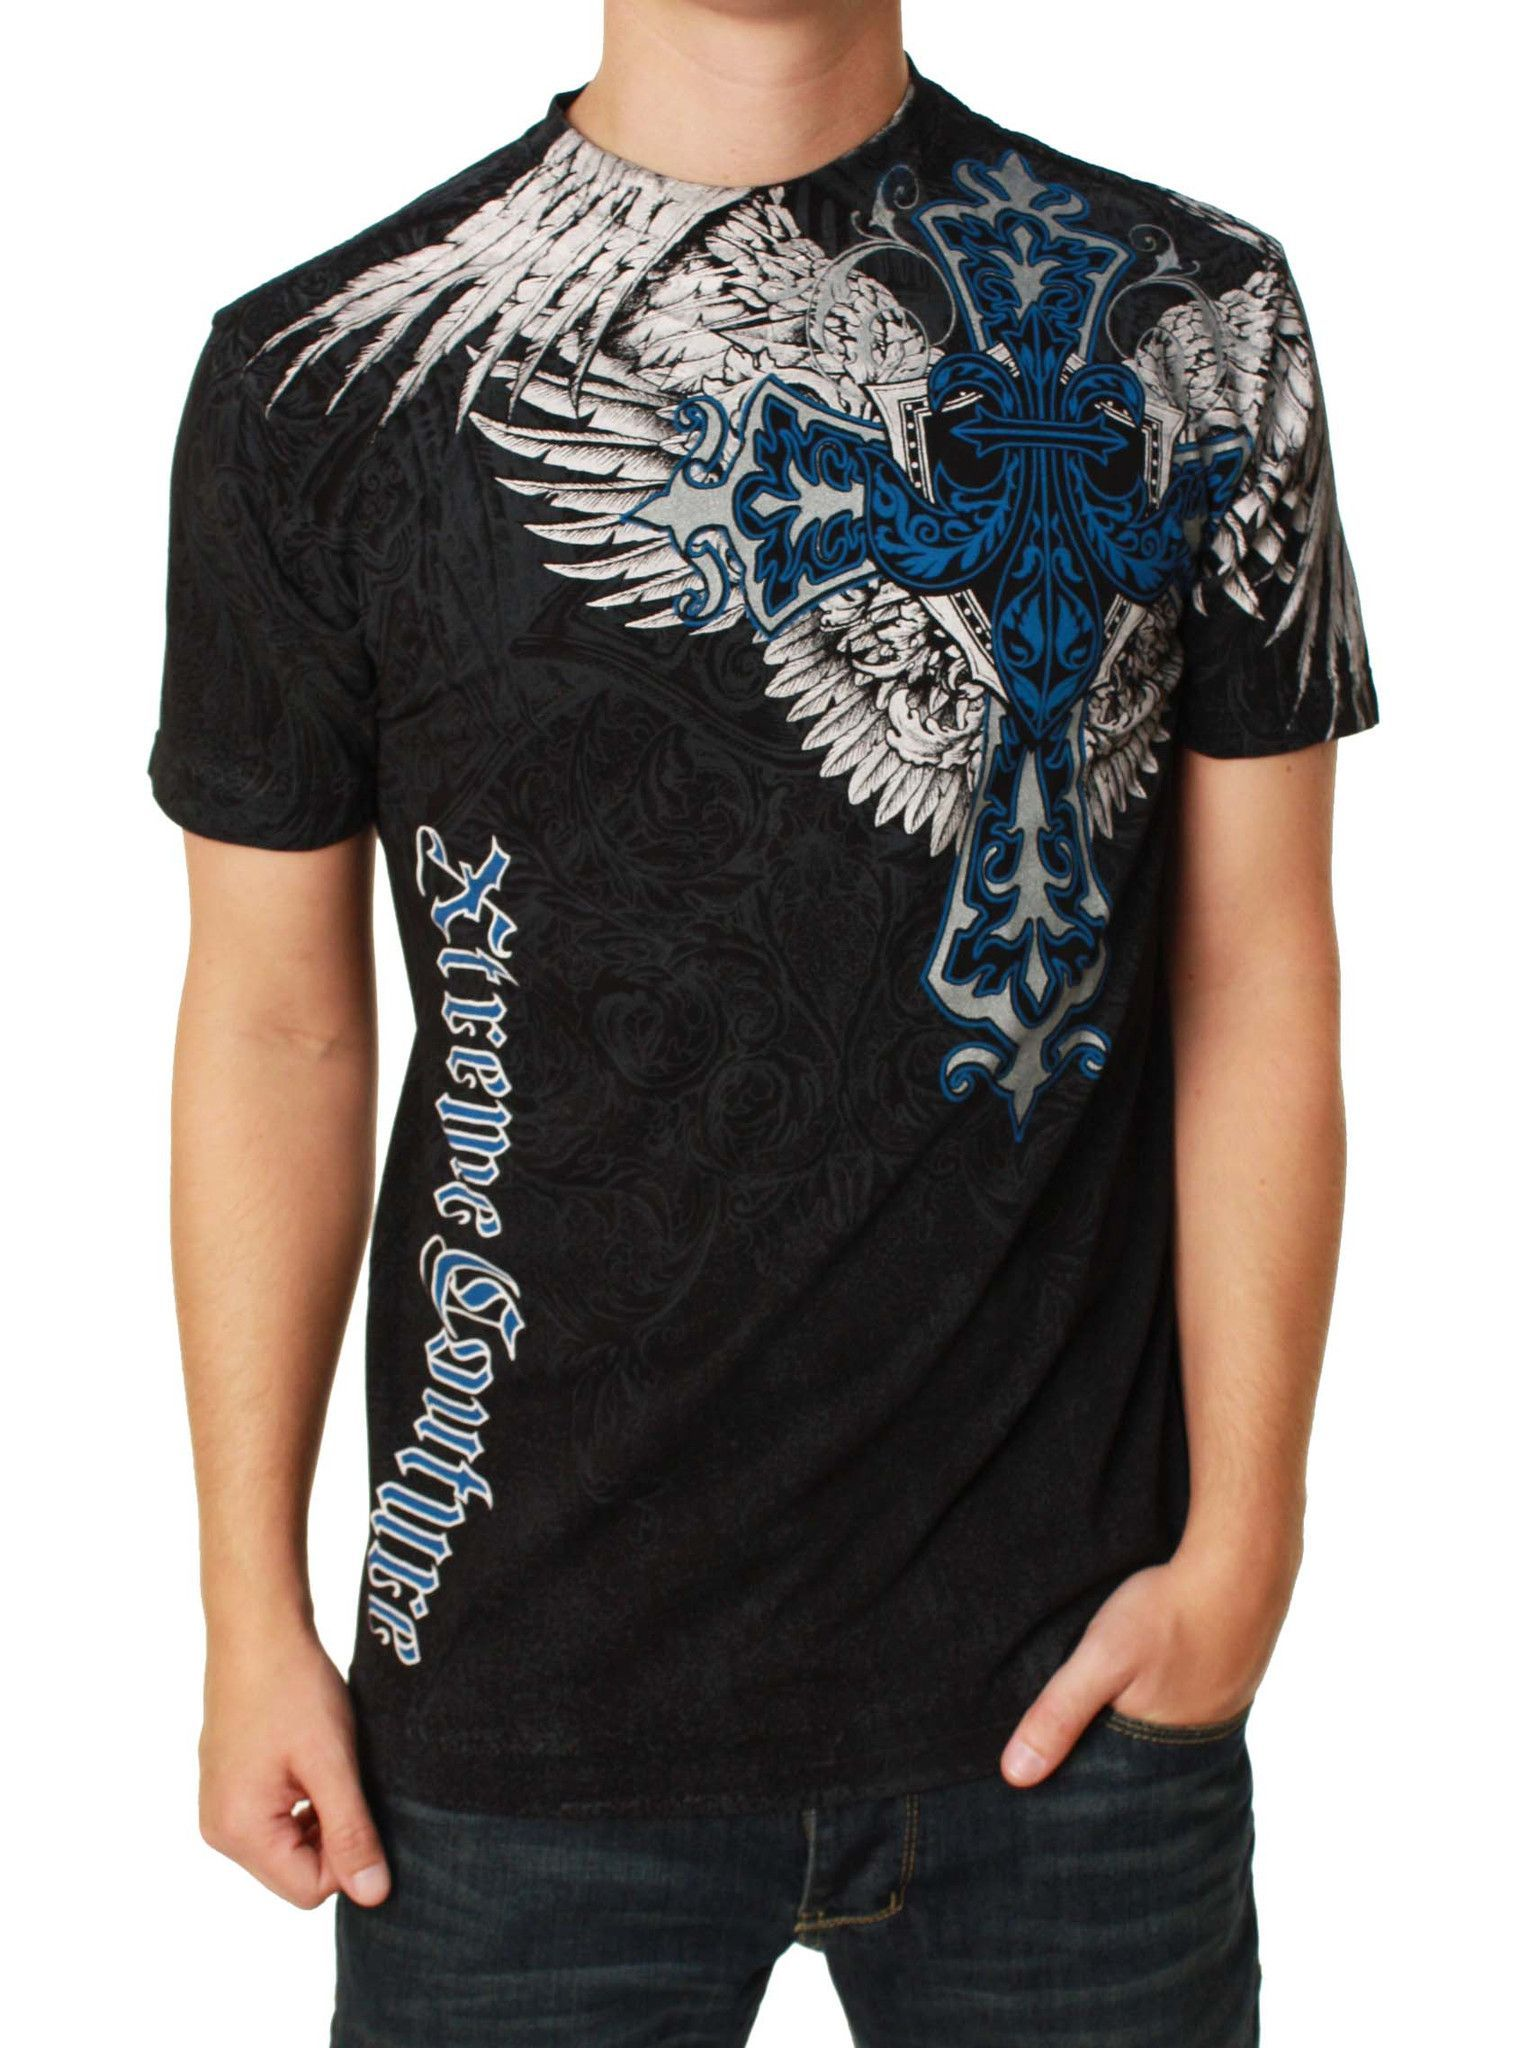 Xtreme Couture Men's Long View Short Sleeve Graphic T-Shirt